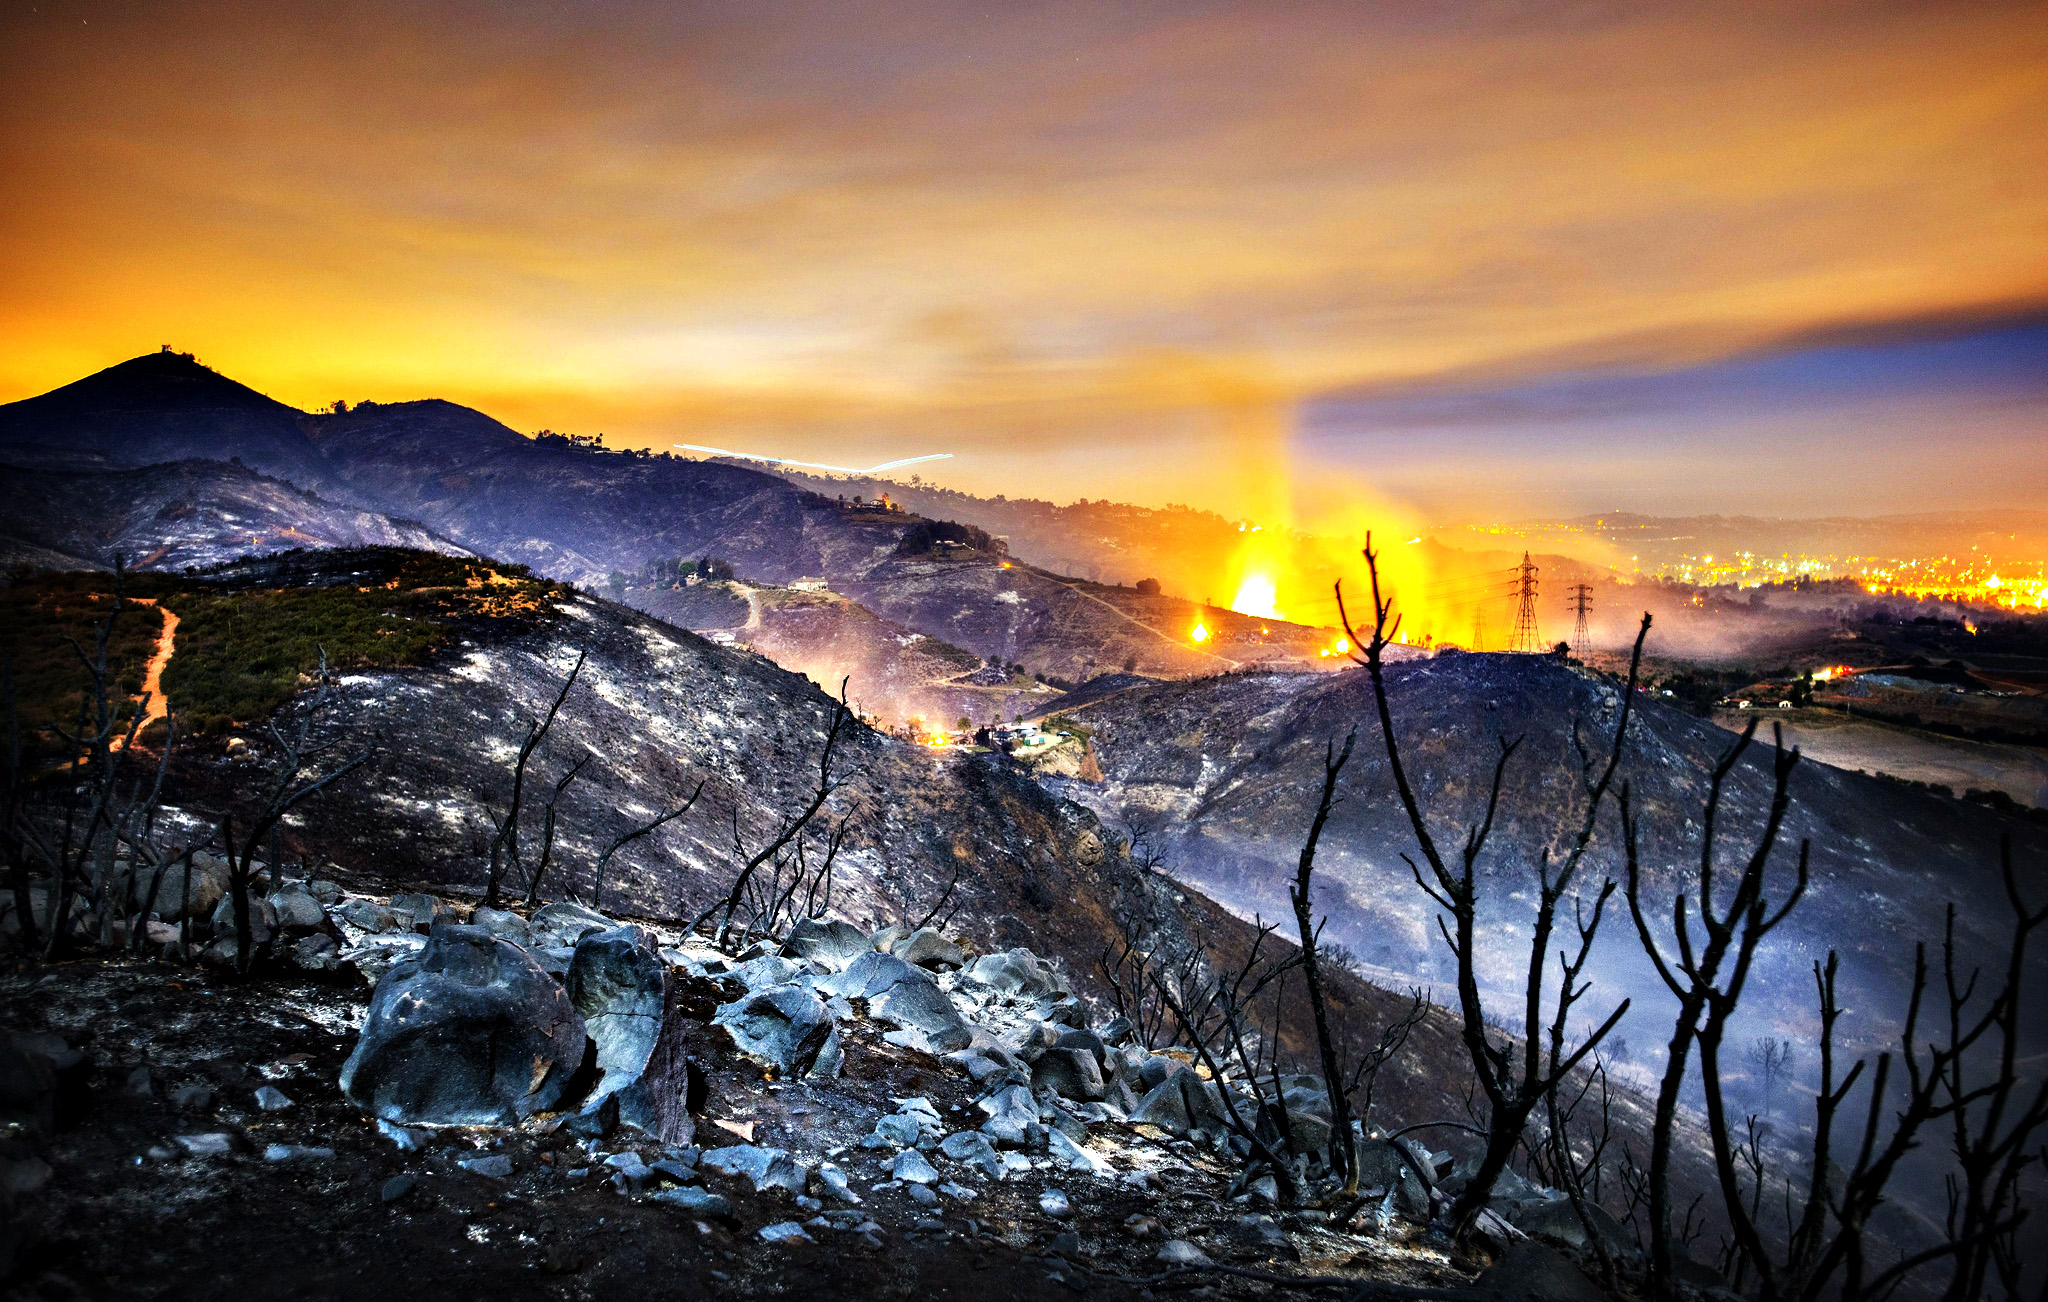 A longtime exposure shows smolderings remains of overnight fires on the hillsides of San Marcos, San Diego county, California, USA, early 16 May 2014. Over 1,000 firefighters battled a series of fast-moving southern California wildfires on 15 May that spread across the region despite the efforts of more than 20 firefighting aircraft. Huge clouds of black smoke hung over much of San Diego County, where the worst blazes were burning 15 May, driven by the blistering Santa Ana winds, which bring strong, dry gusts out from the interior desert.